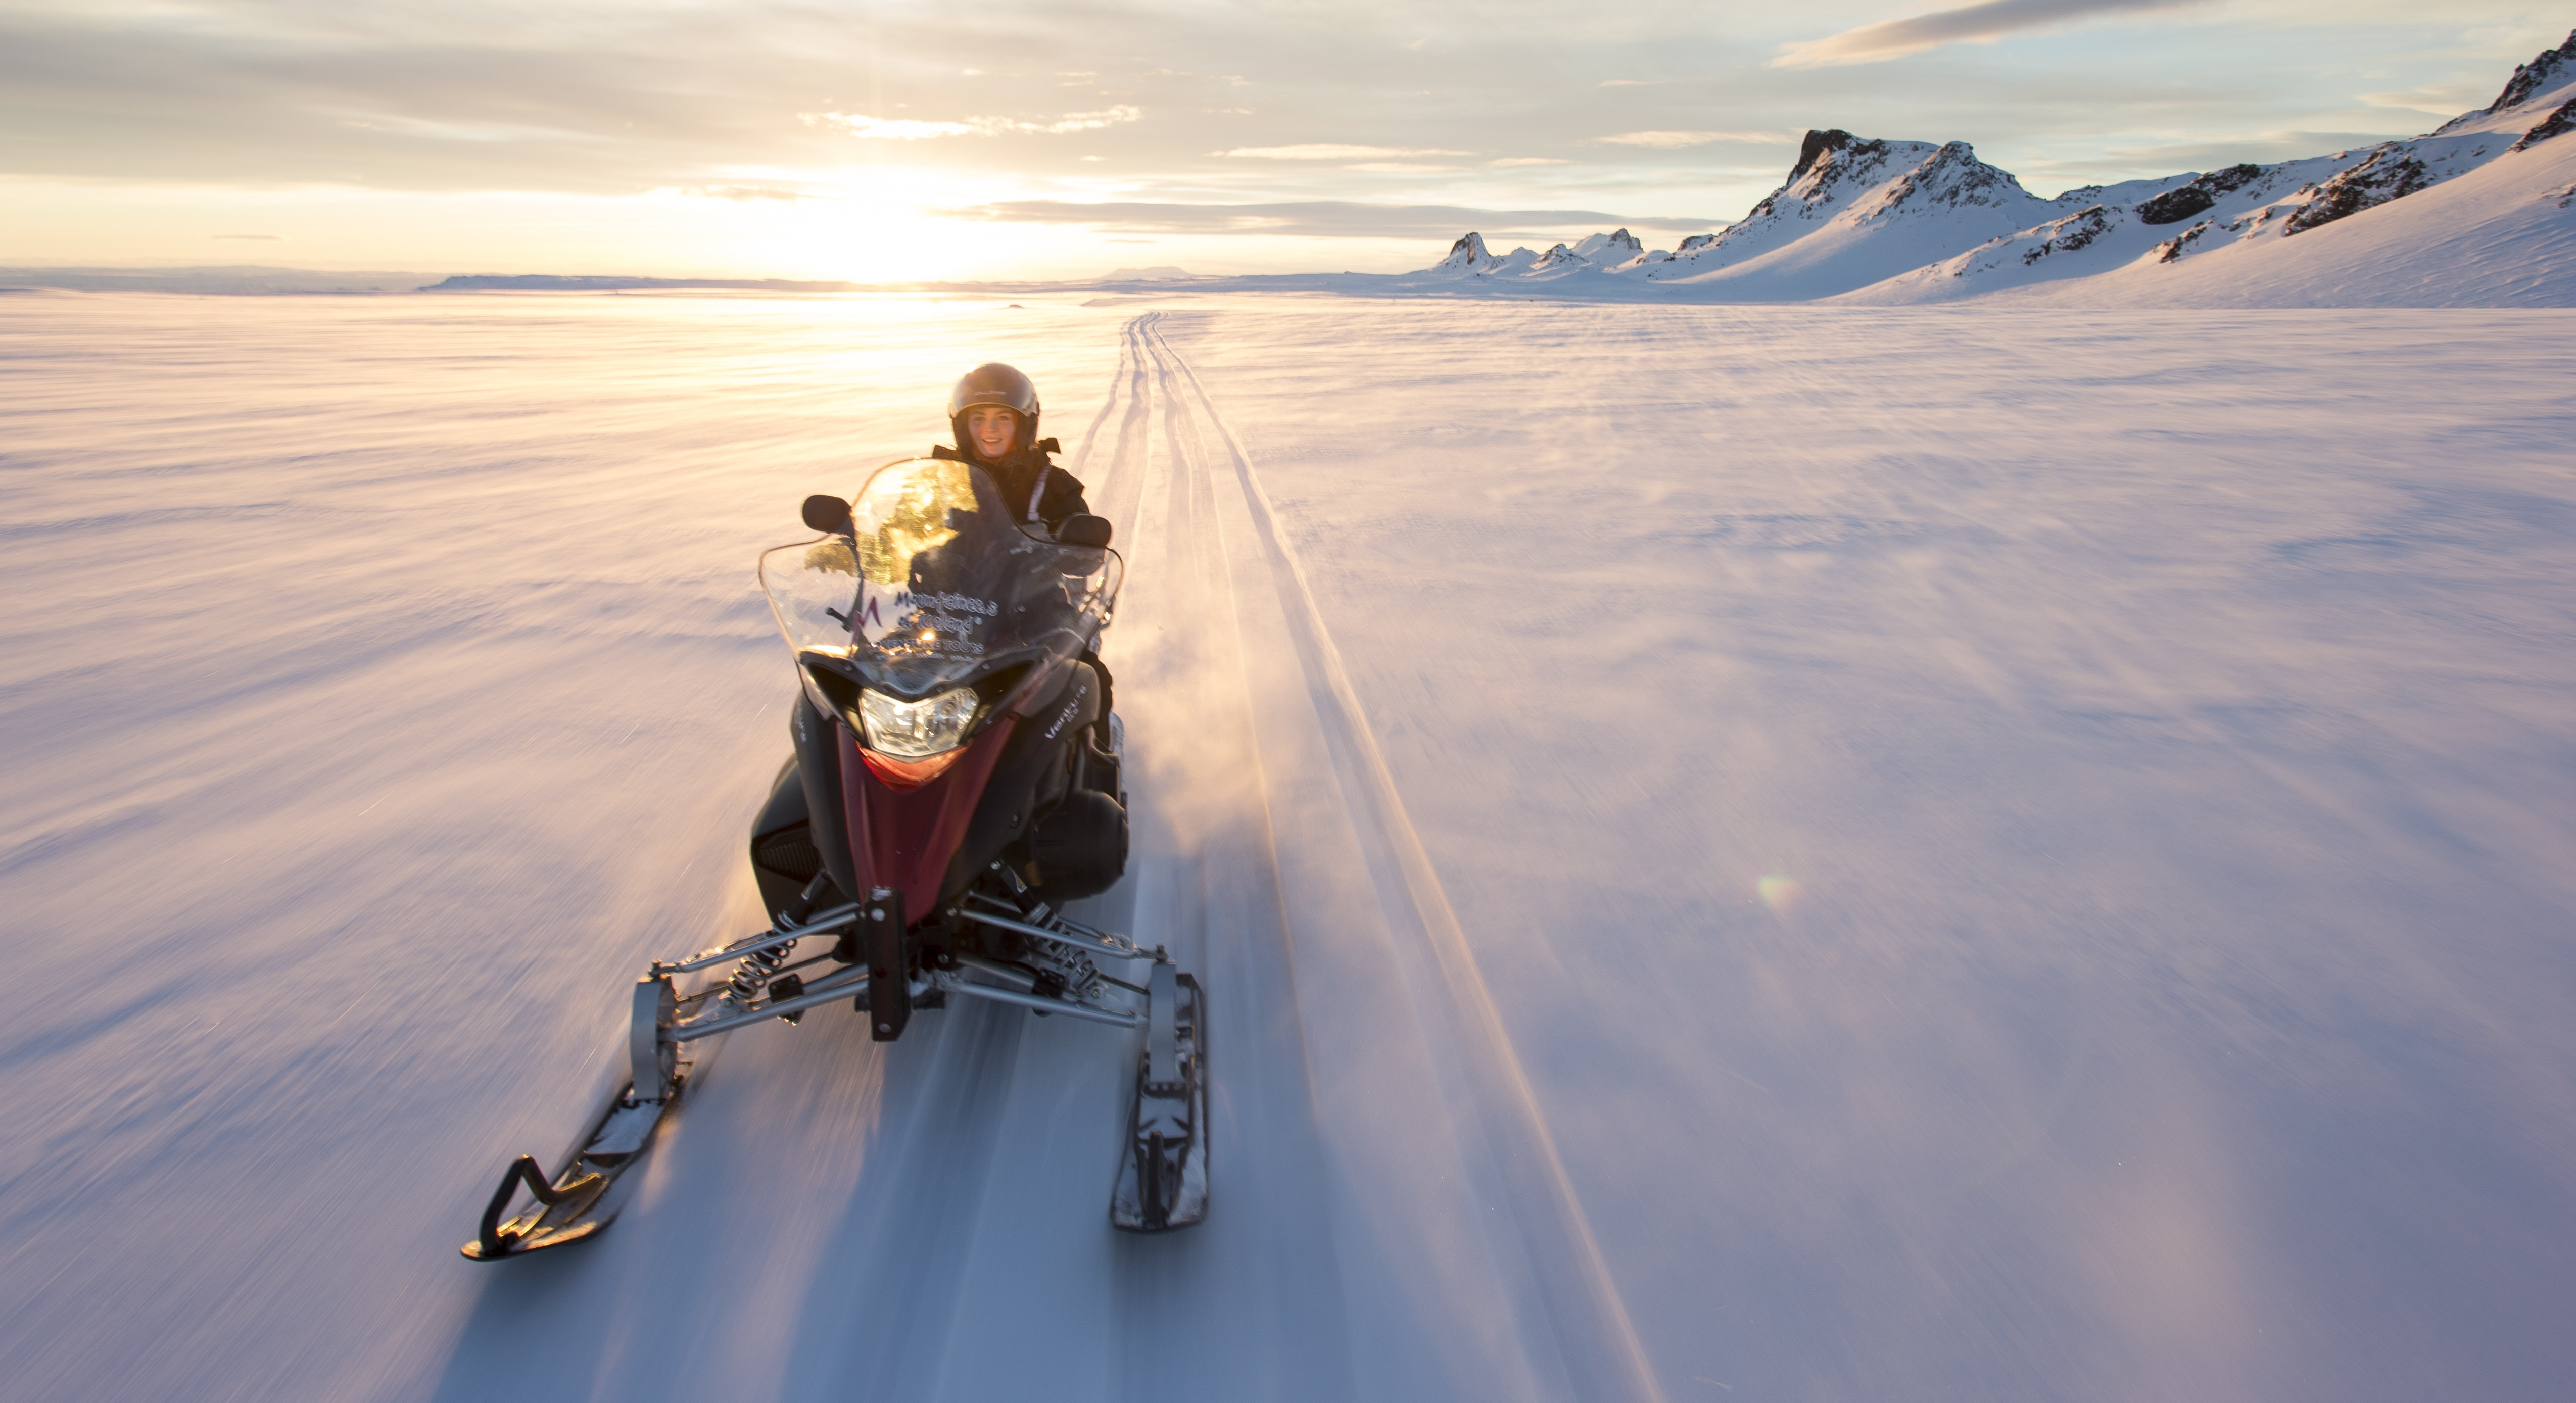 Enjoy your snowmobile adventure on top of Langjökull Glacier in Iceland.